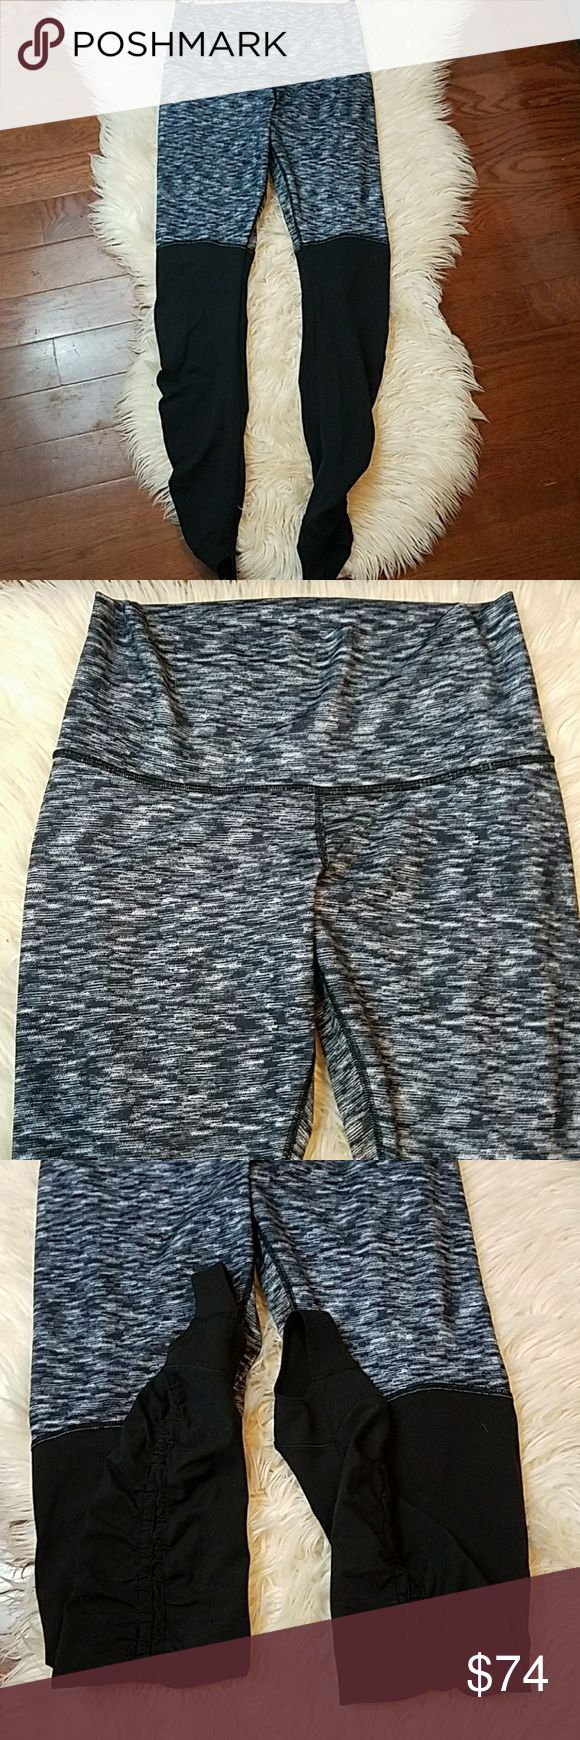 LULULEMON Stirrup Legging Dramatic Static Blk/Gry Lululemon wunder under stirrup leggings restored dramatic static black and grey.    Excellent condition! No piling or flaws.   Size 10 lululemon athletica Pants Leggings